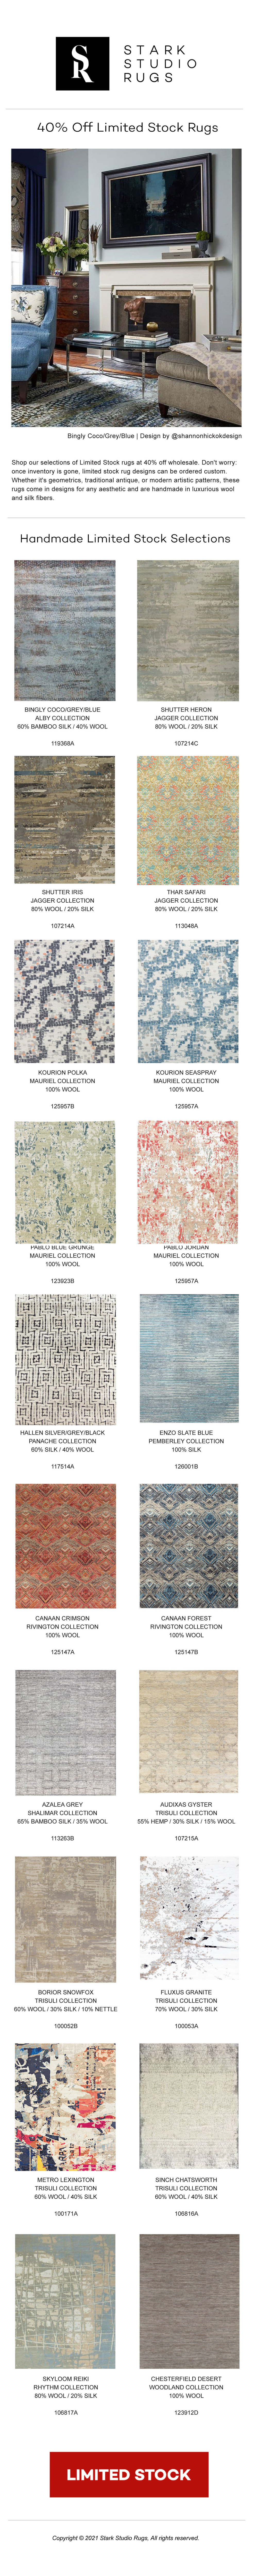 Stark Studio Rugs Before They Go: 40% Limited Stock Handmade Rugs